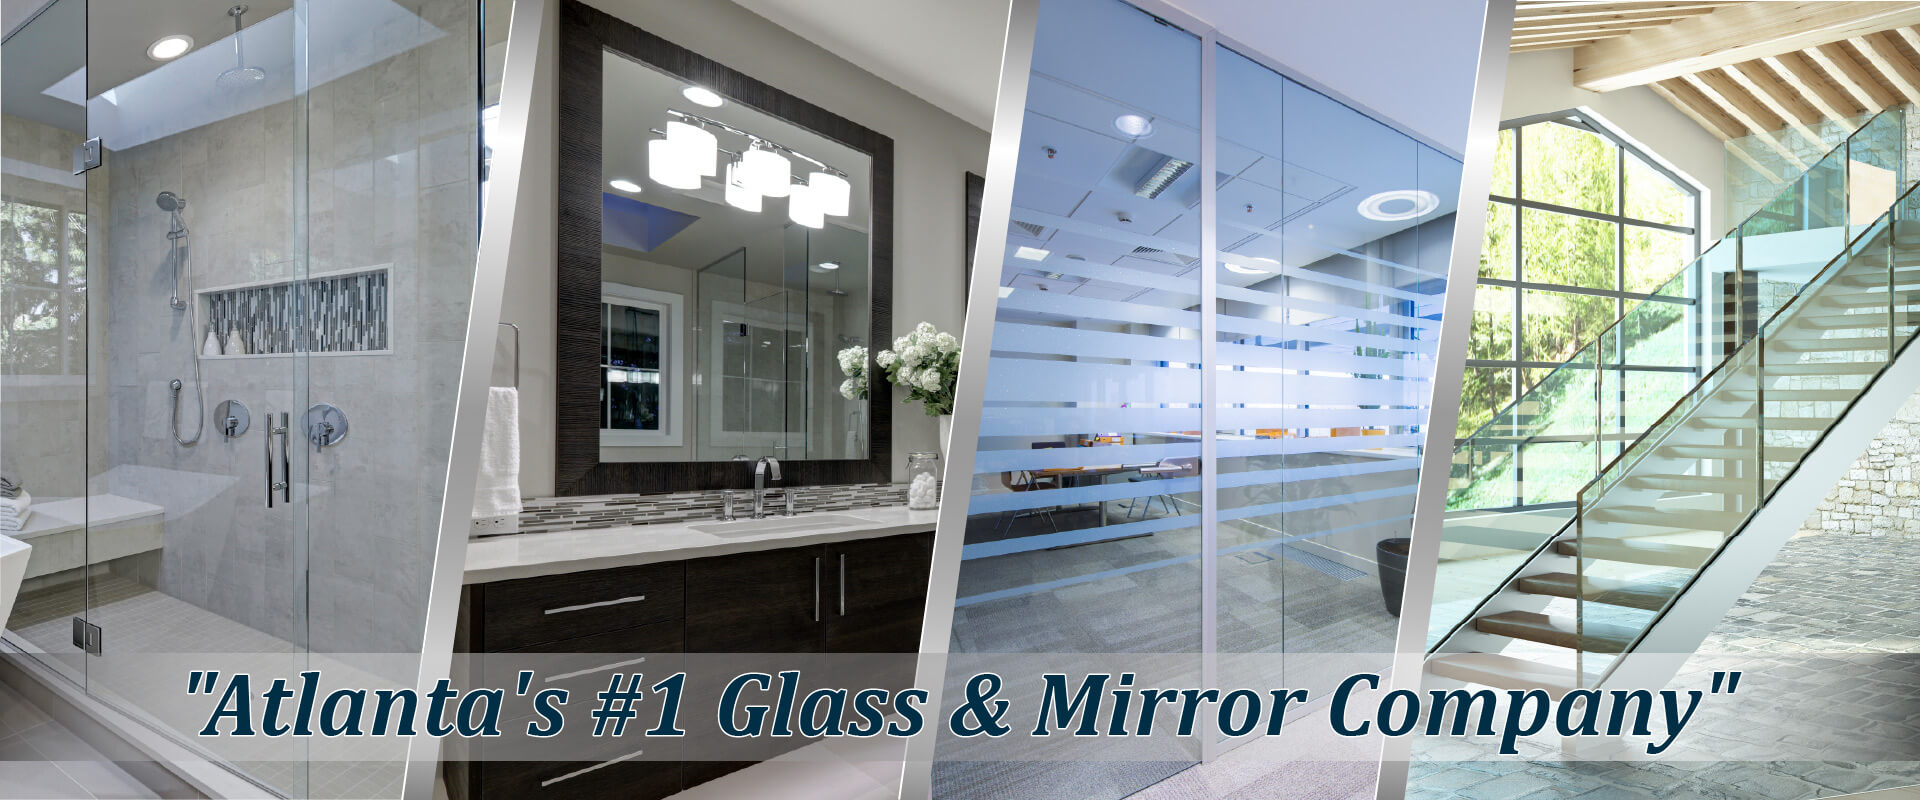 Glass & Mirrors Duluth Georgia - Shower Enclosures - Store Fronts ...